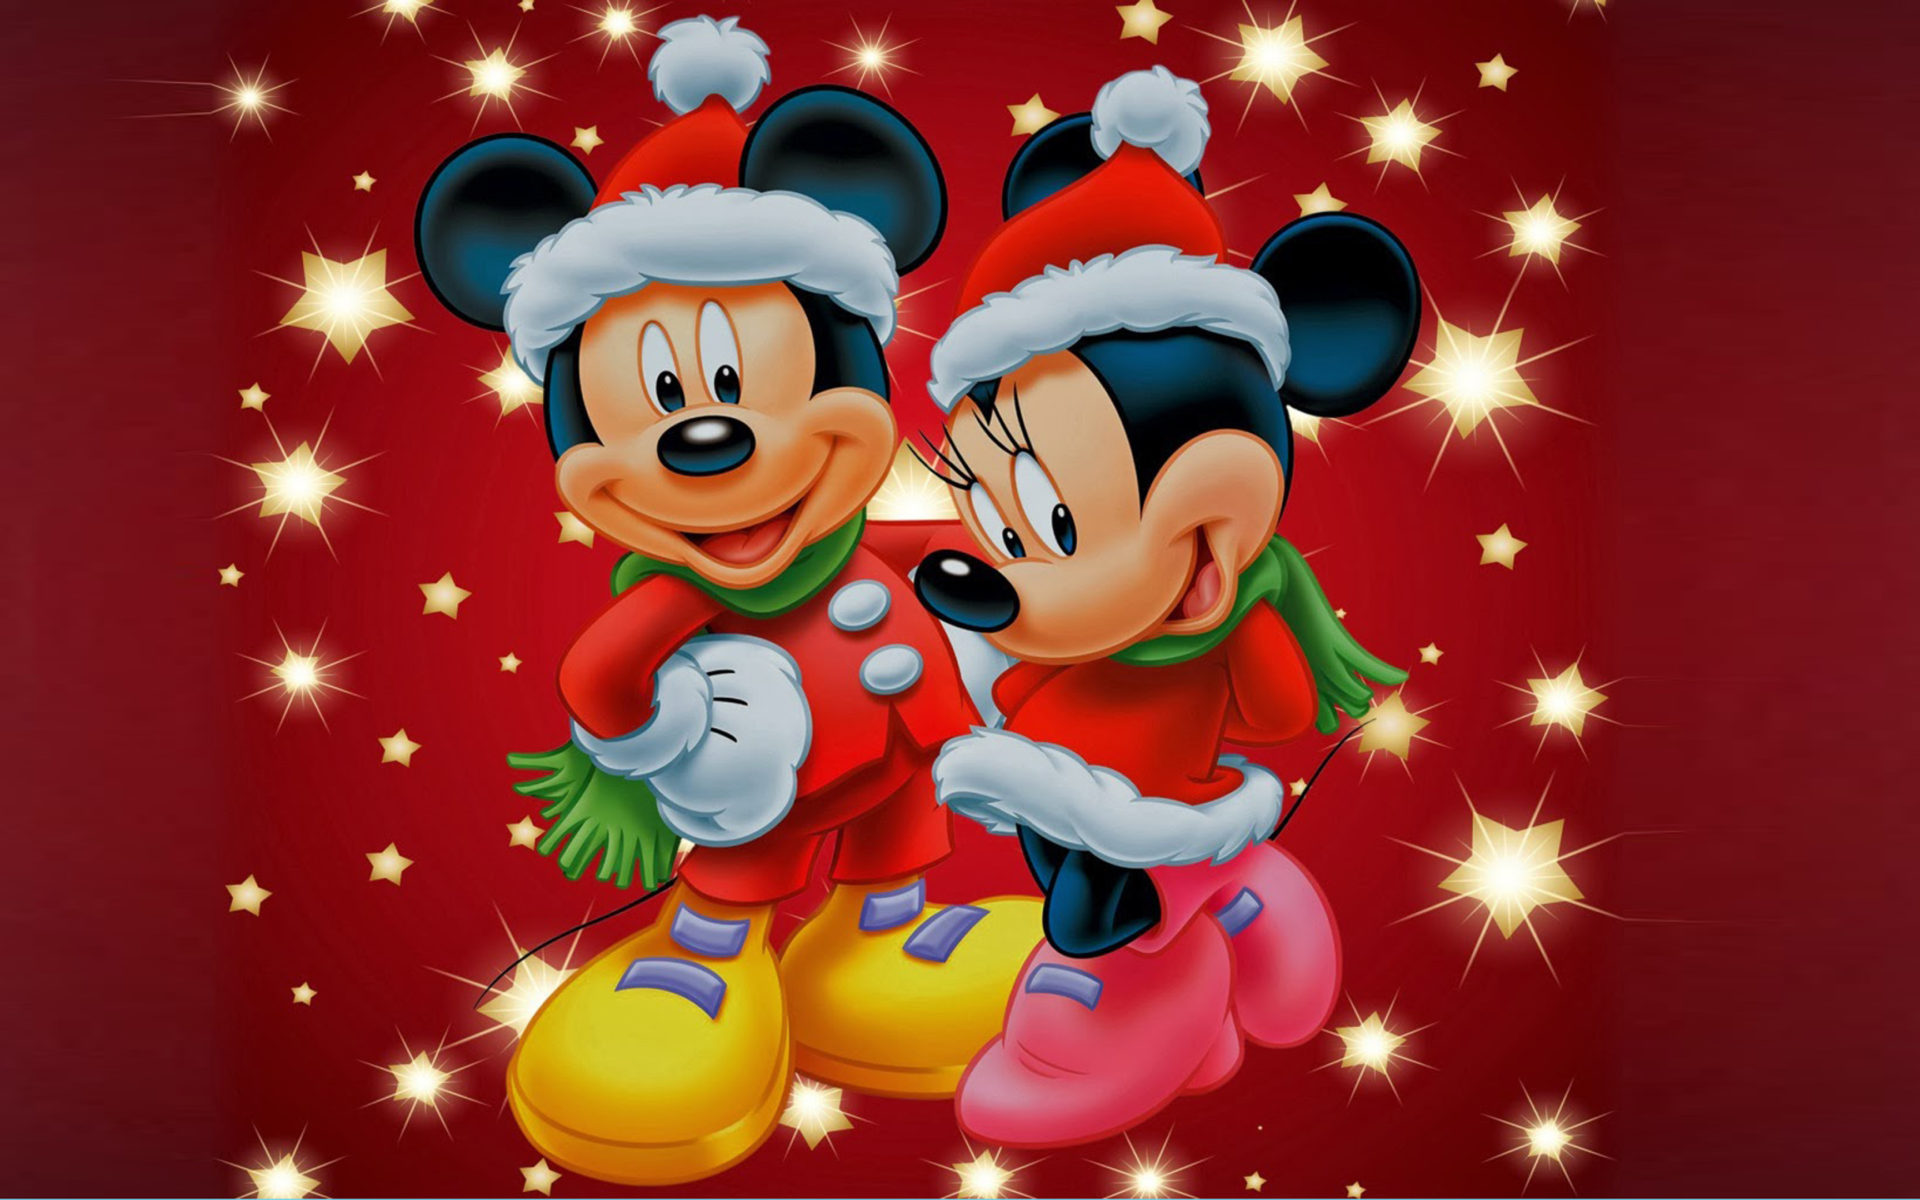 Hd Puzzle Wallpaper Mickey And Minnie Mouse Christmas Theme Desktop Wallpaper